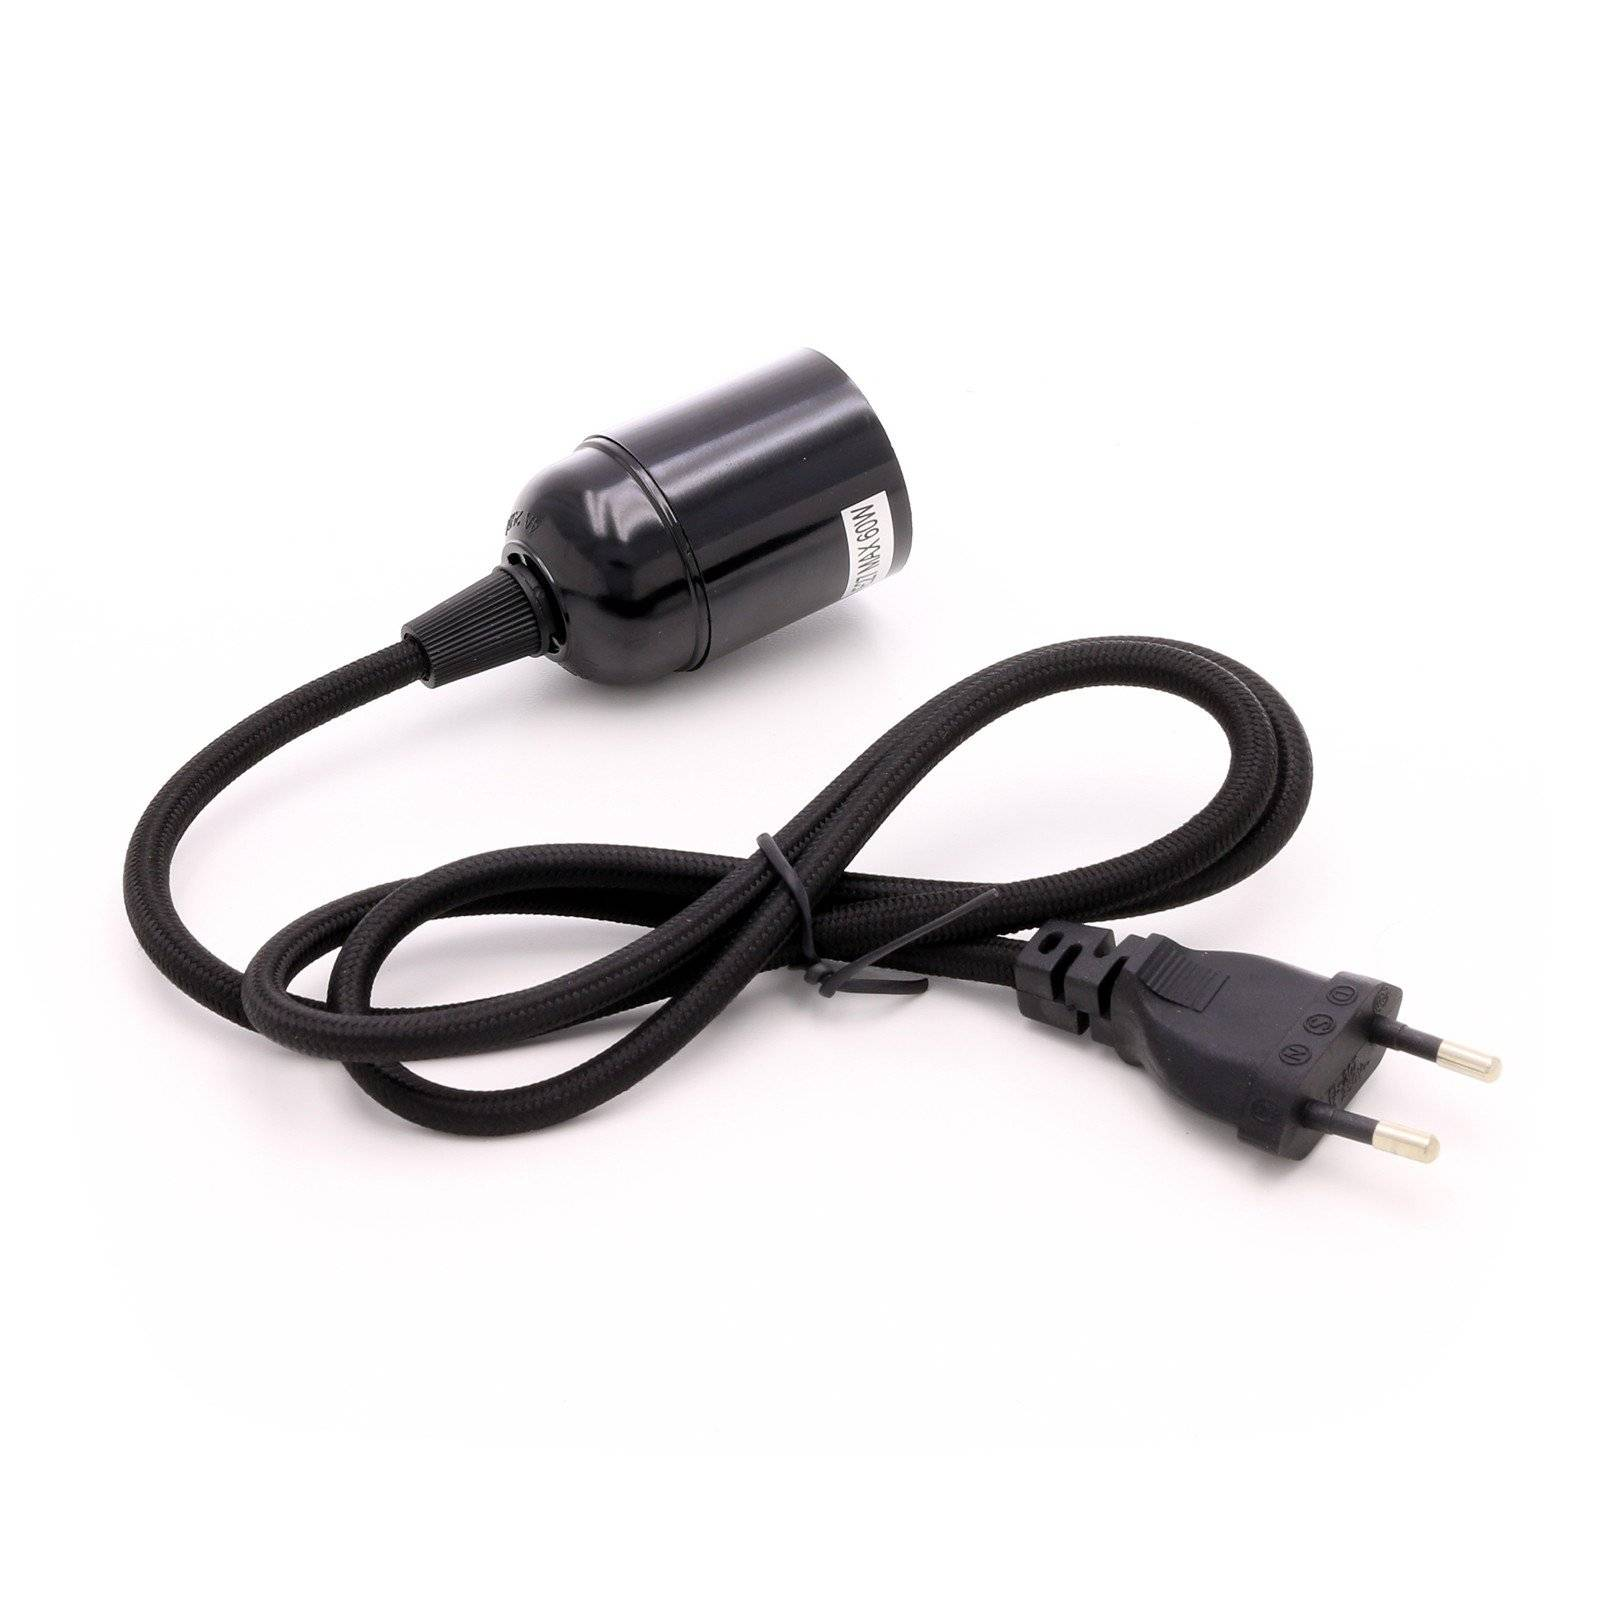 pack ampoule horticole led x20 pour une plante 50cm x 50cm avec c ble et prise boutique floraled. Black Bedroom Furniture Sets. Home Design Ideas